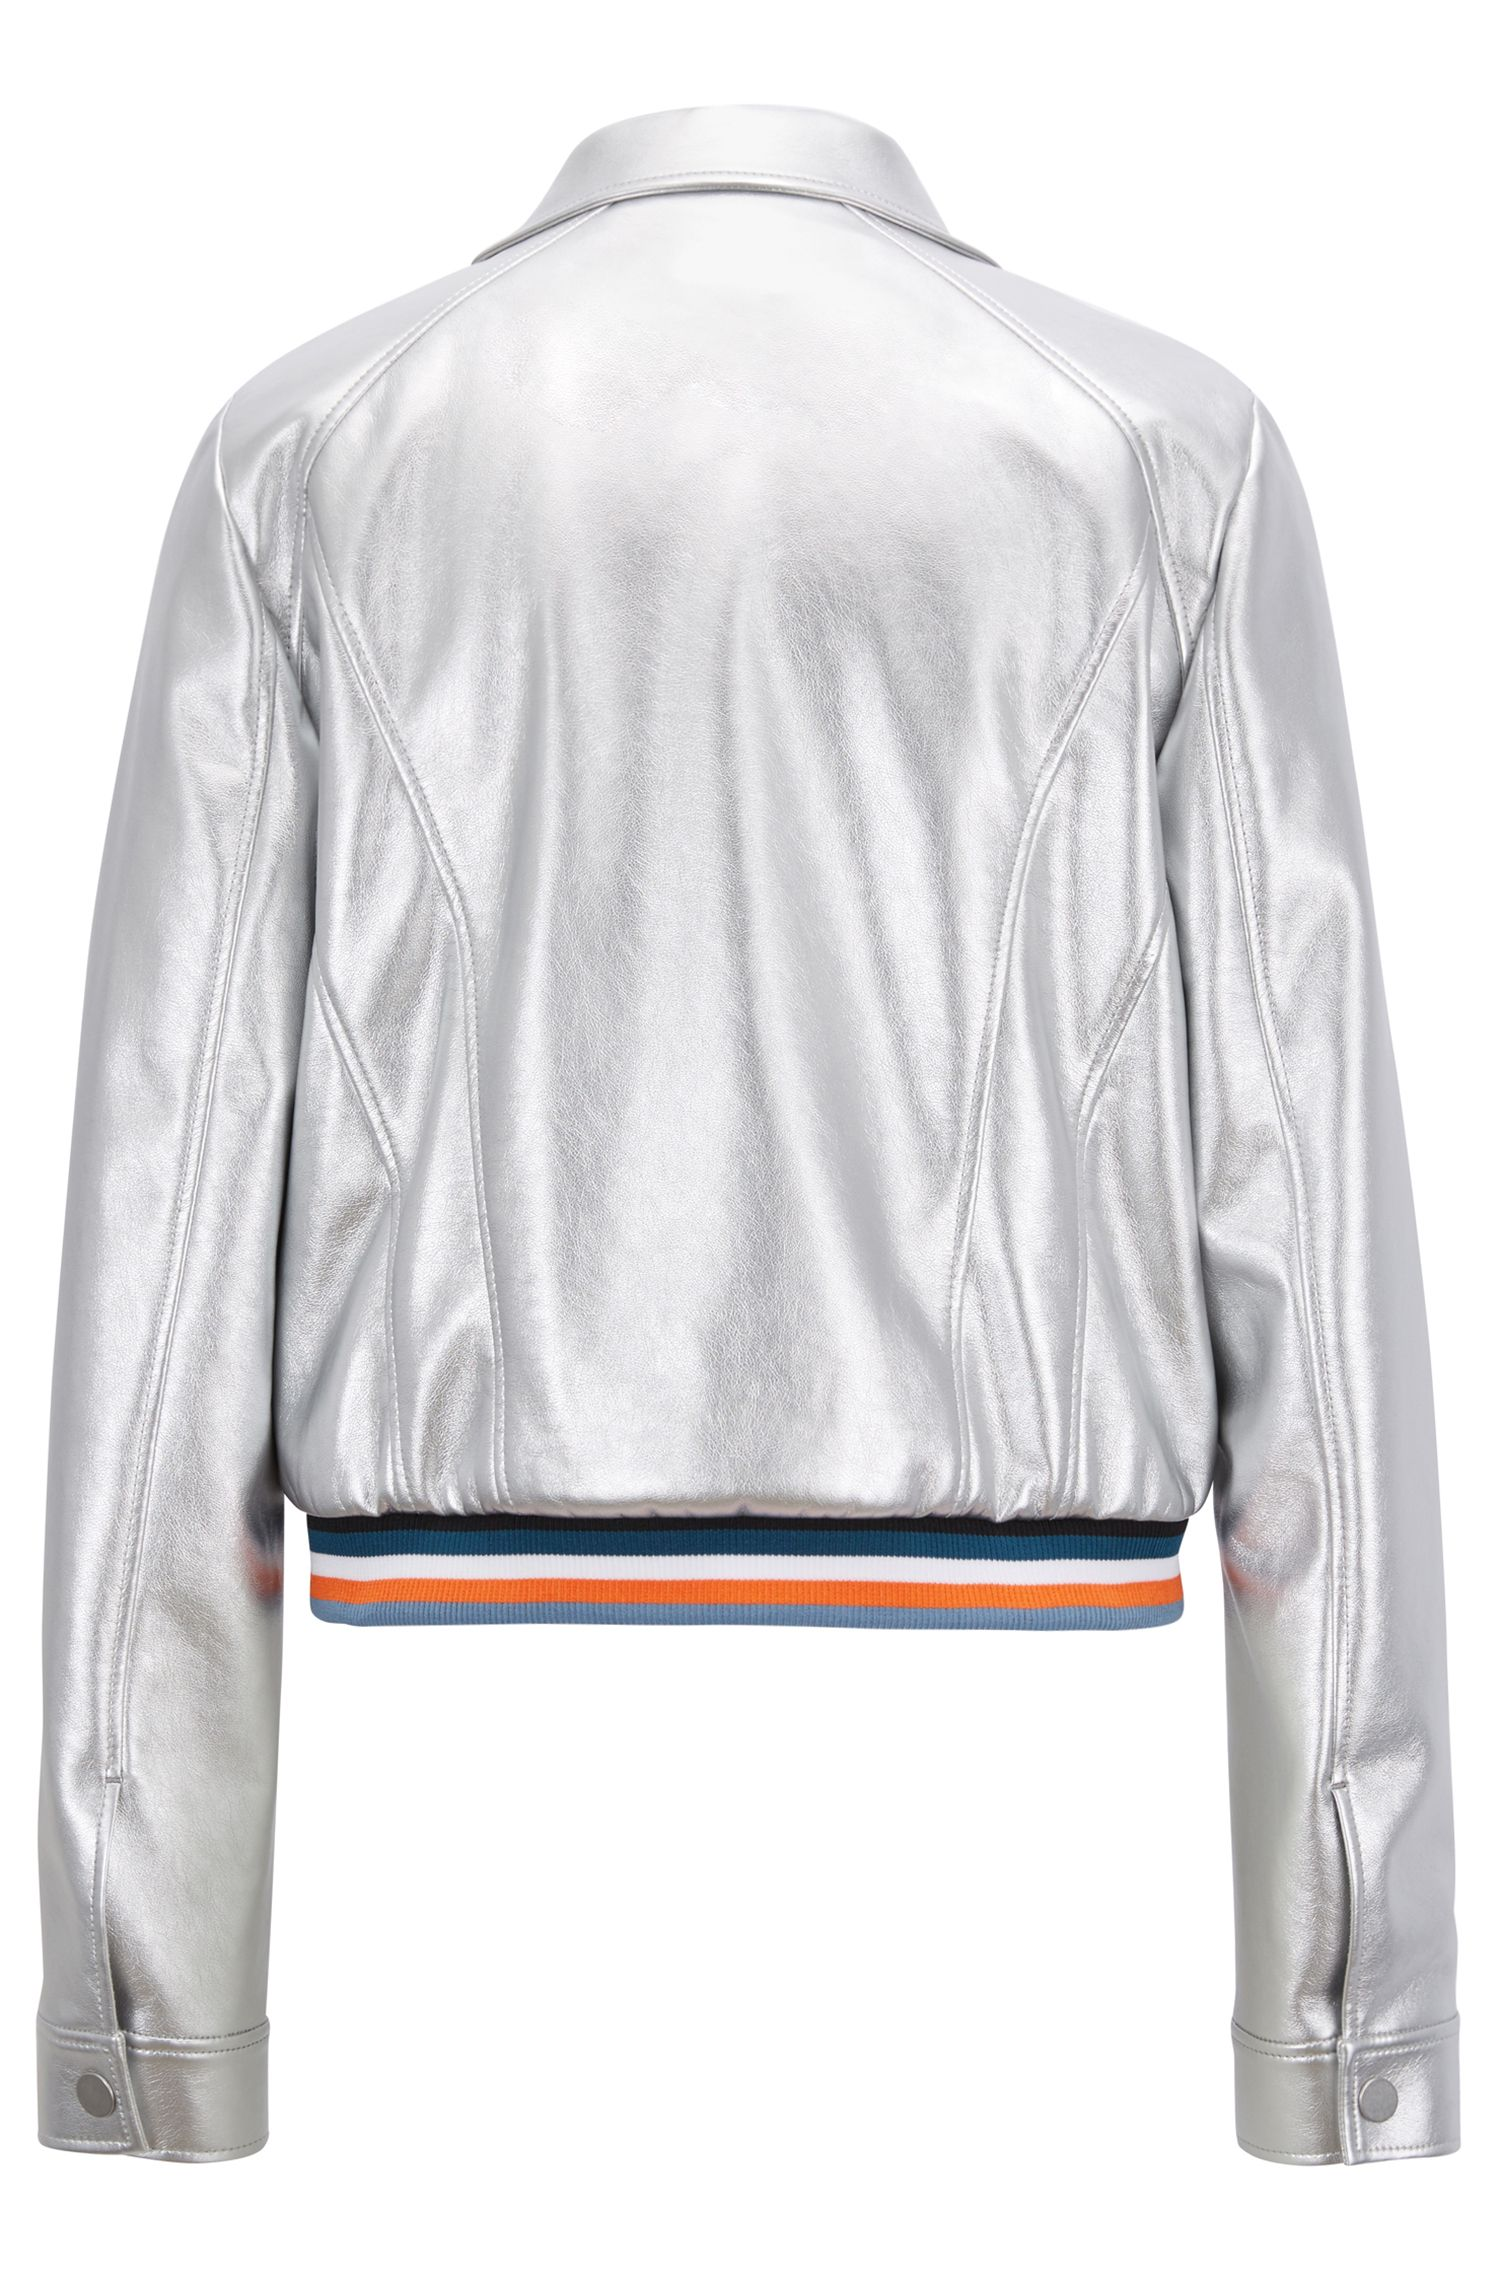 Regular-fit jacket in metallic faux leather, Silver